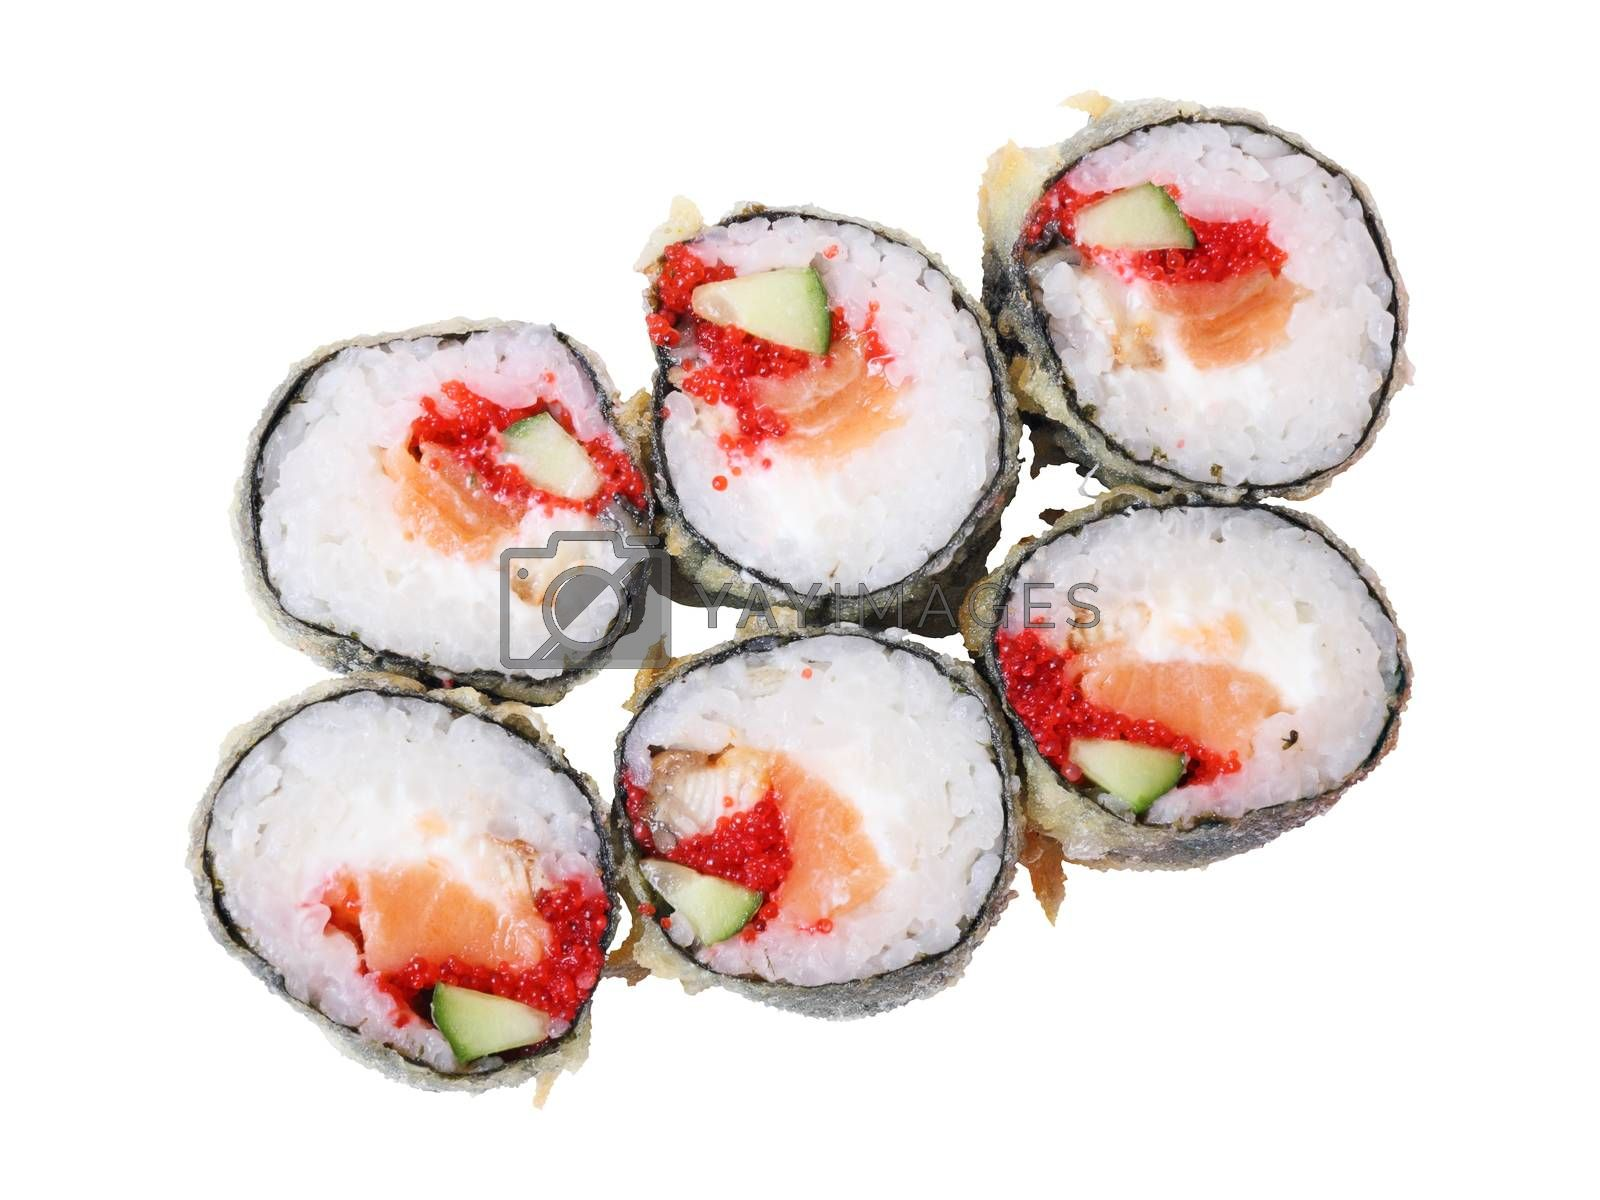 Royalty free image of Top view of hot rolls with salmon by whiterabbit